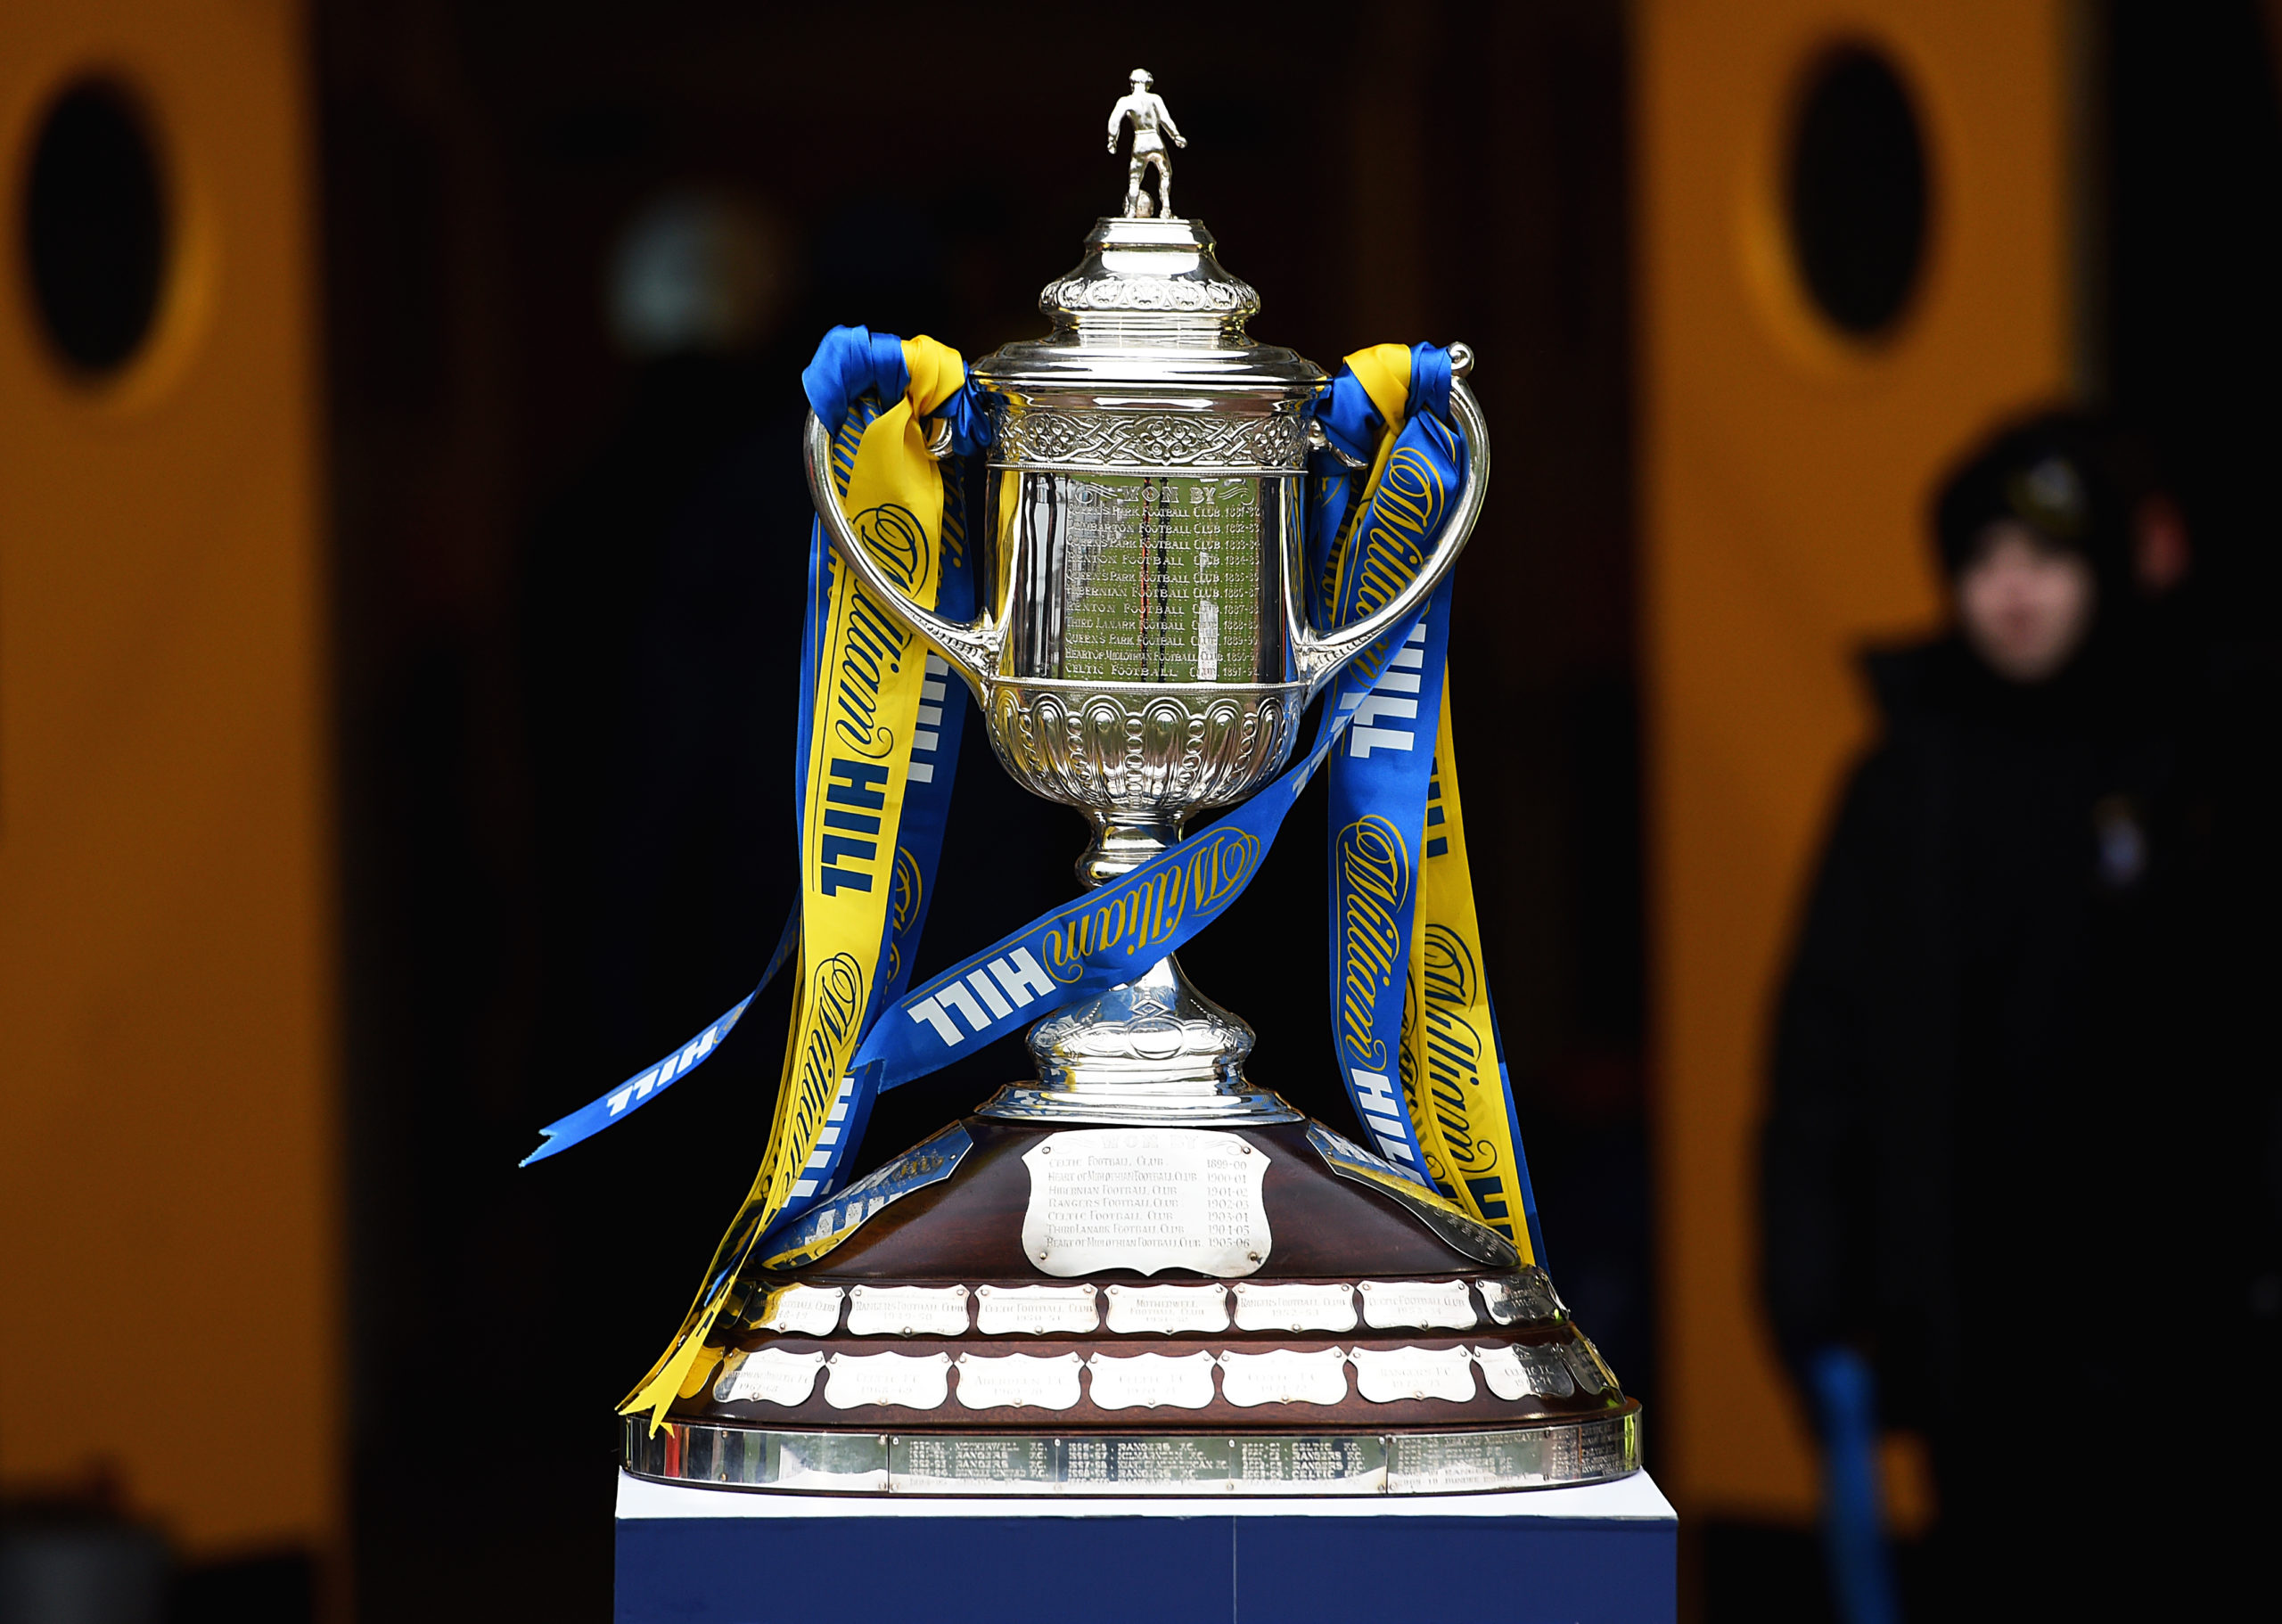 Wick Academy have had some memorable days in the Scottish Cup